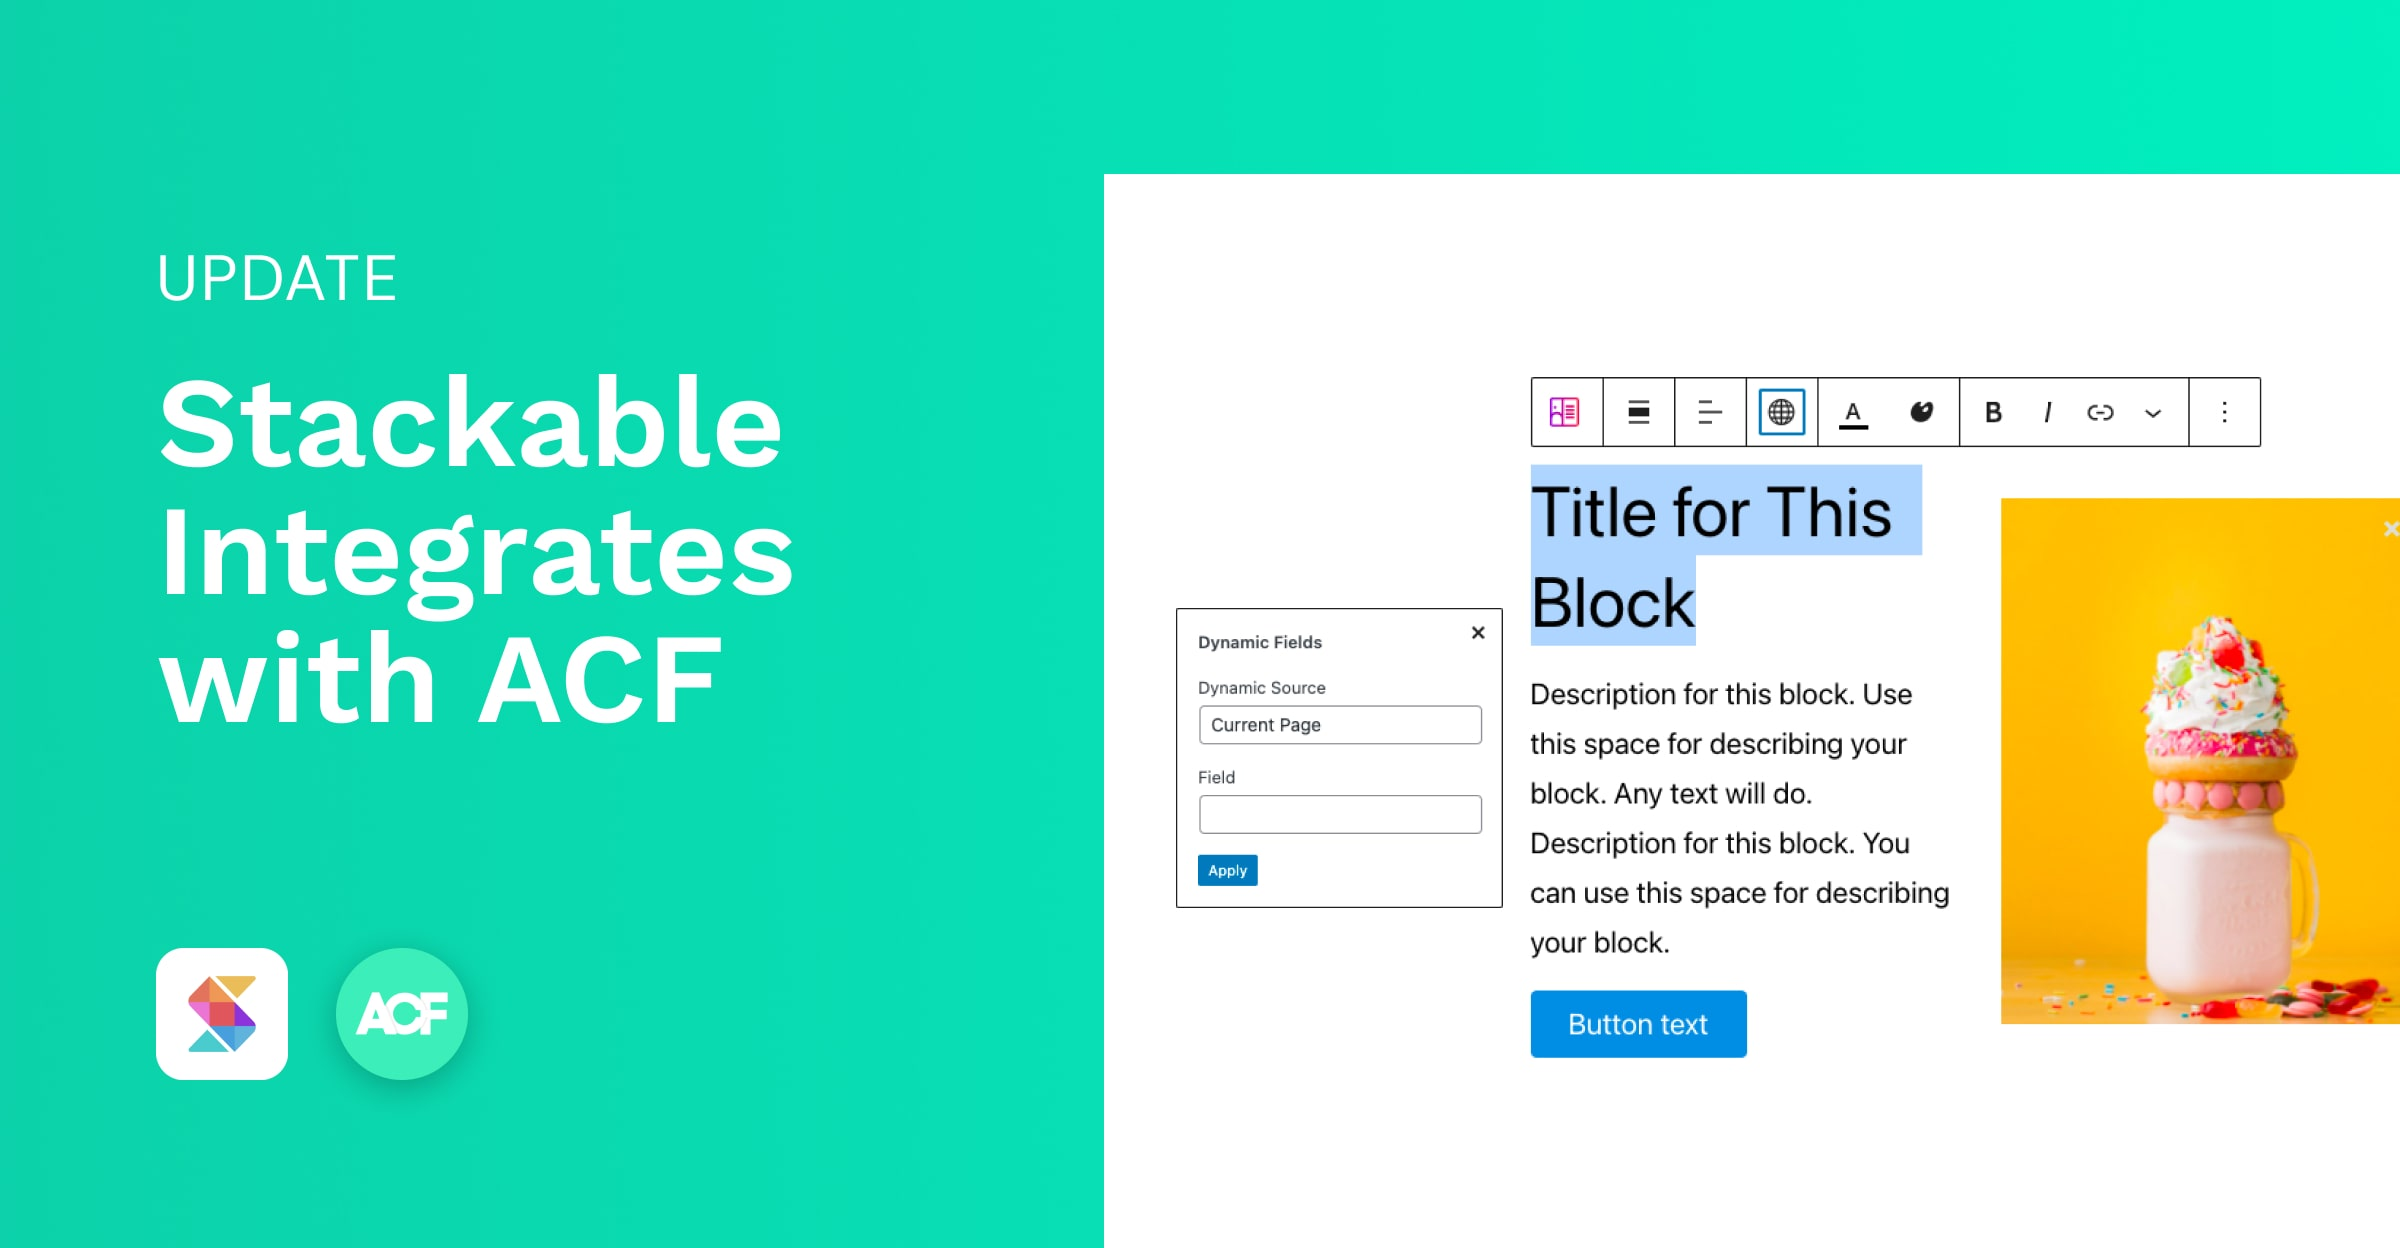 Stackable Integrates with ACF